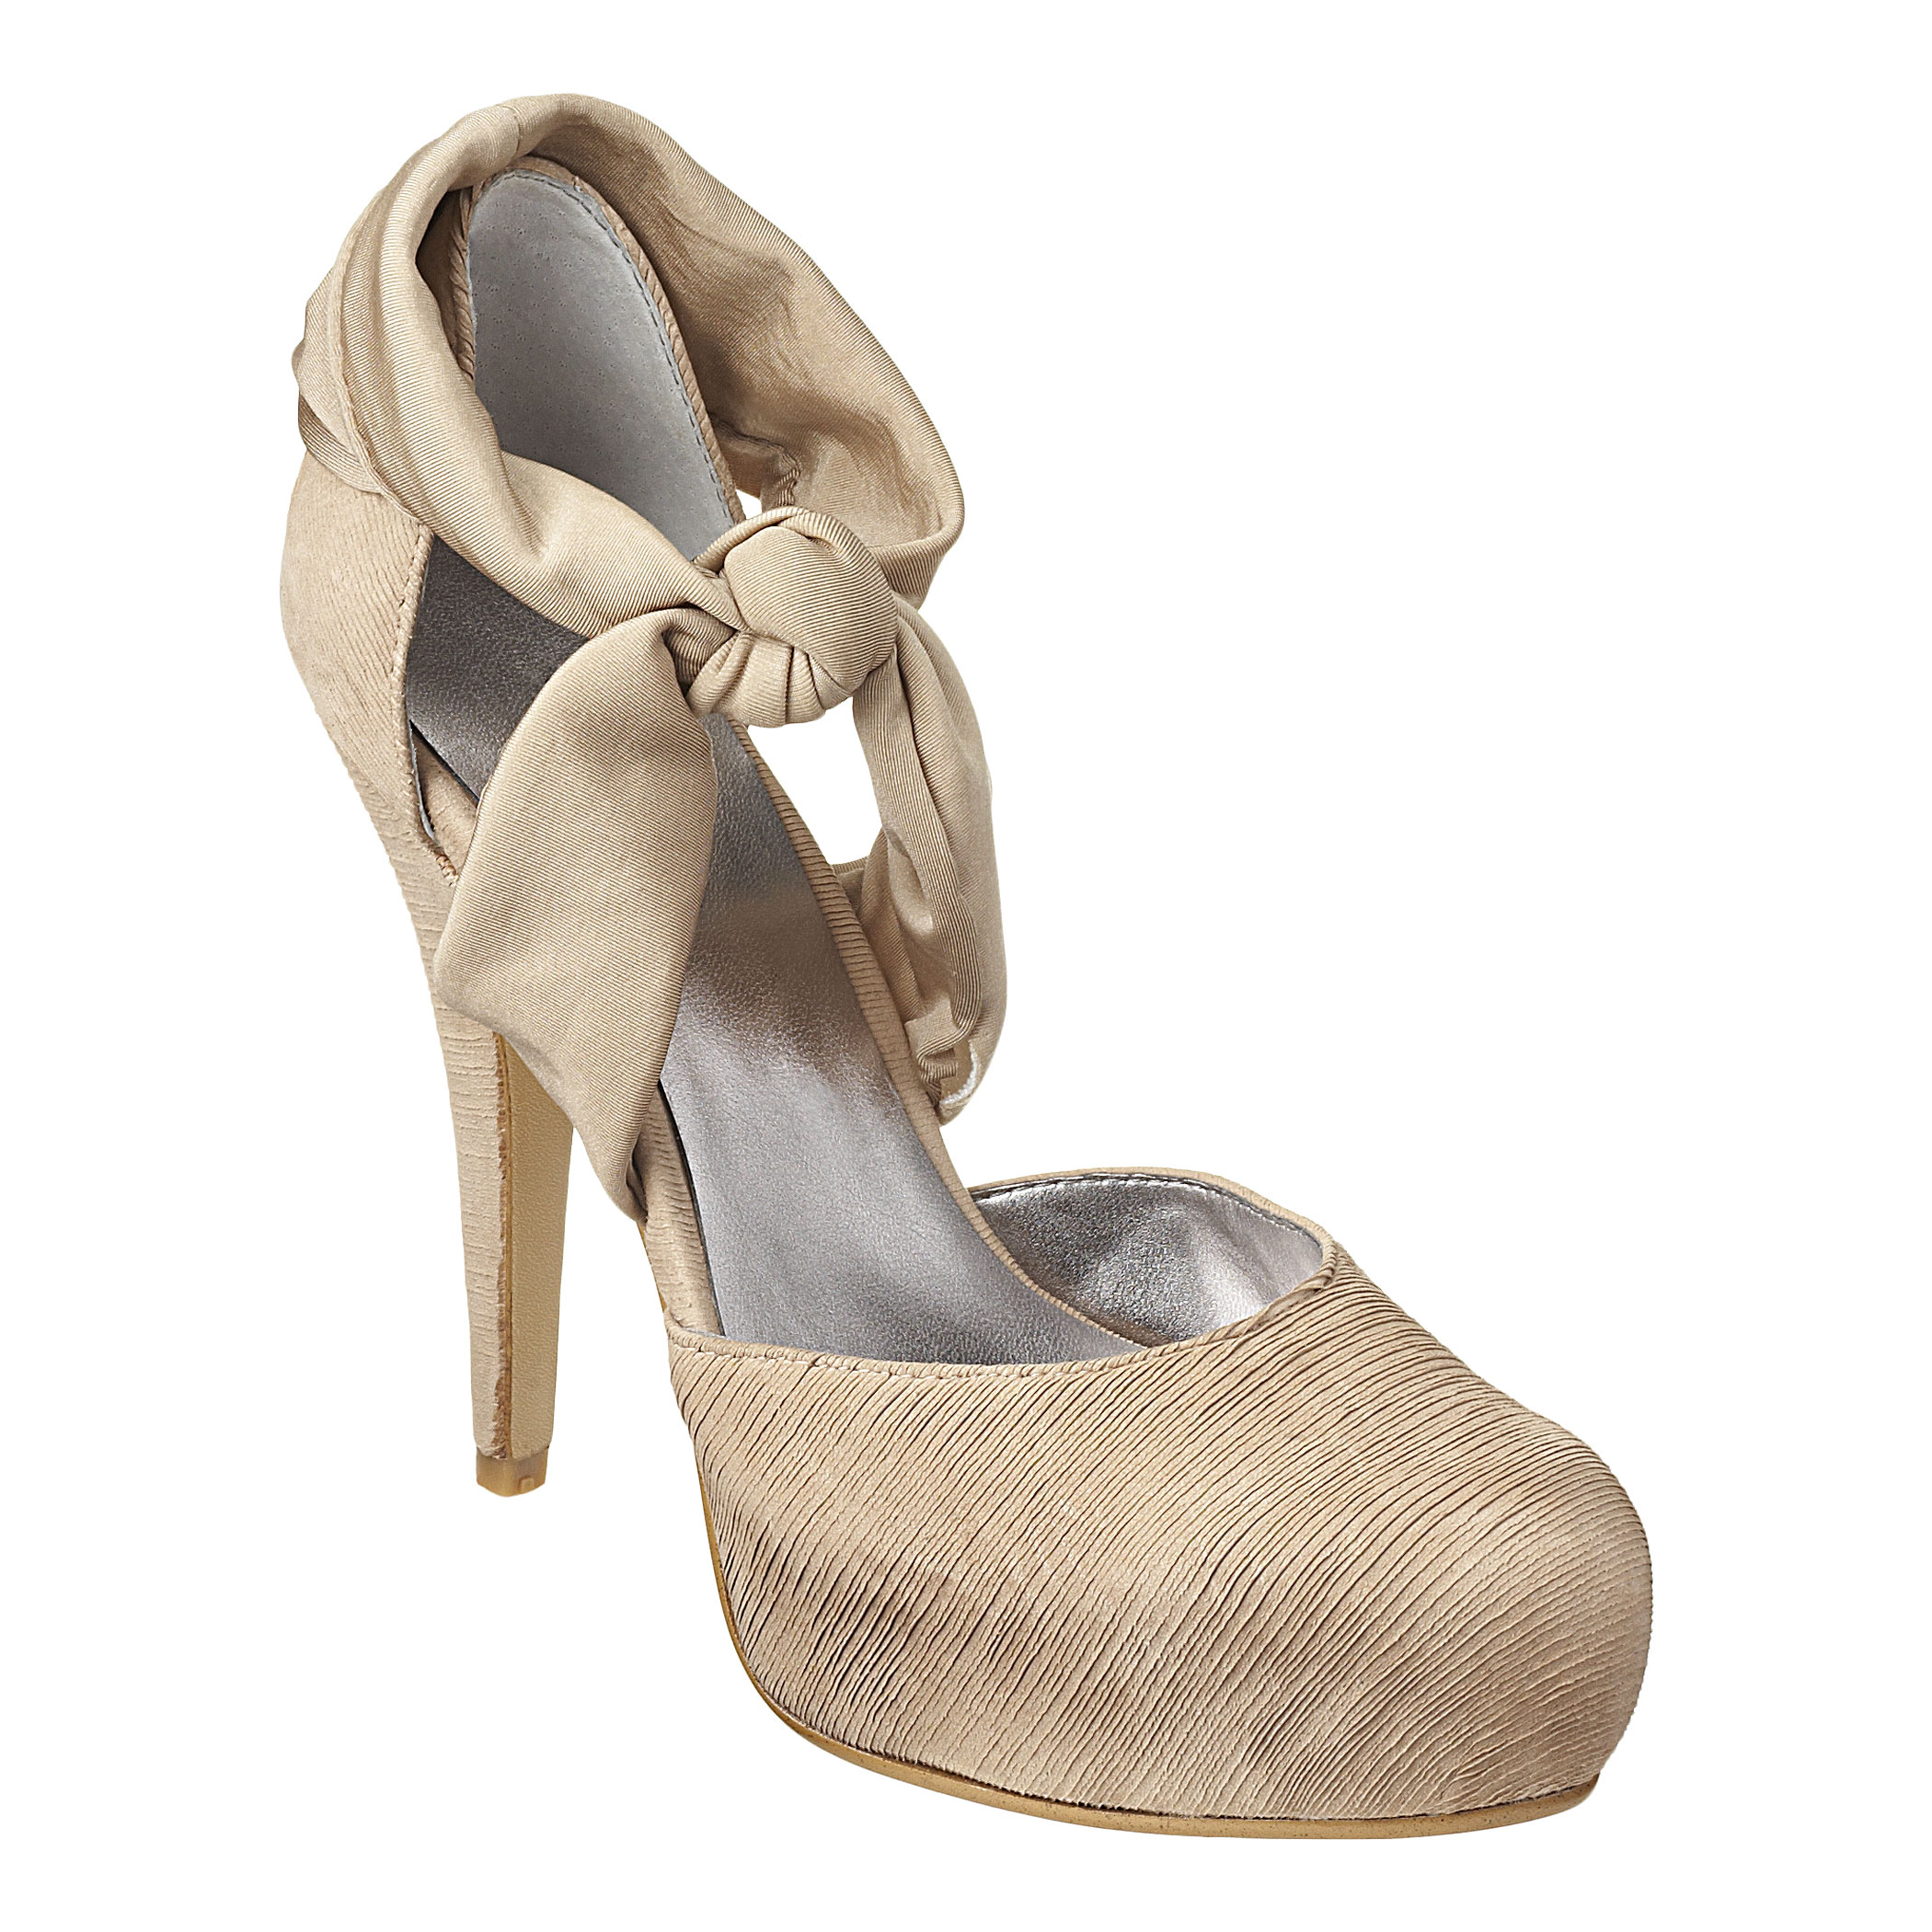 2011-bridal-heels-trilla-closed-toe-platform-wedding-shoes-romantic.original